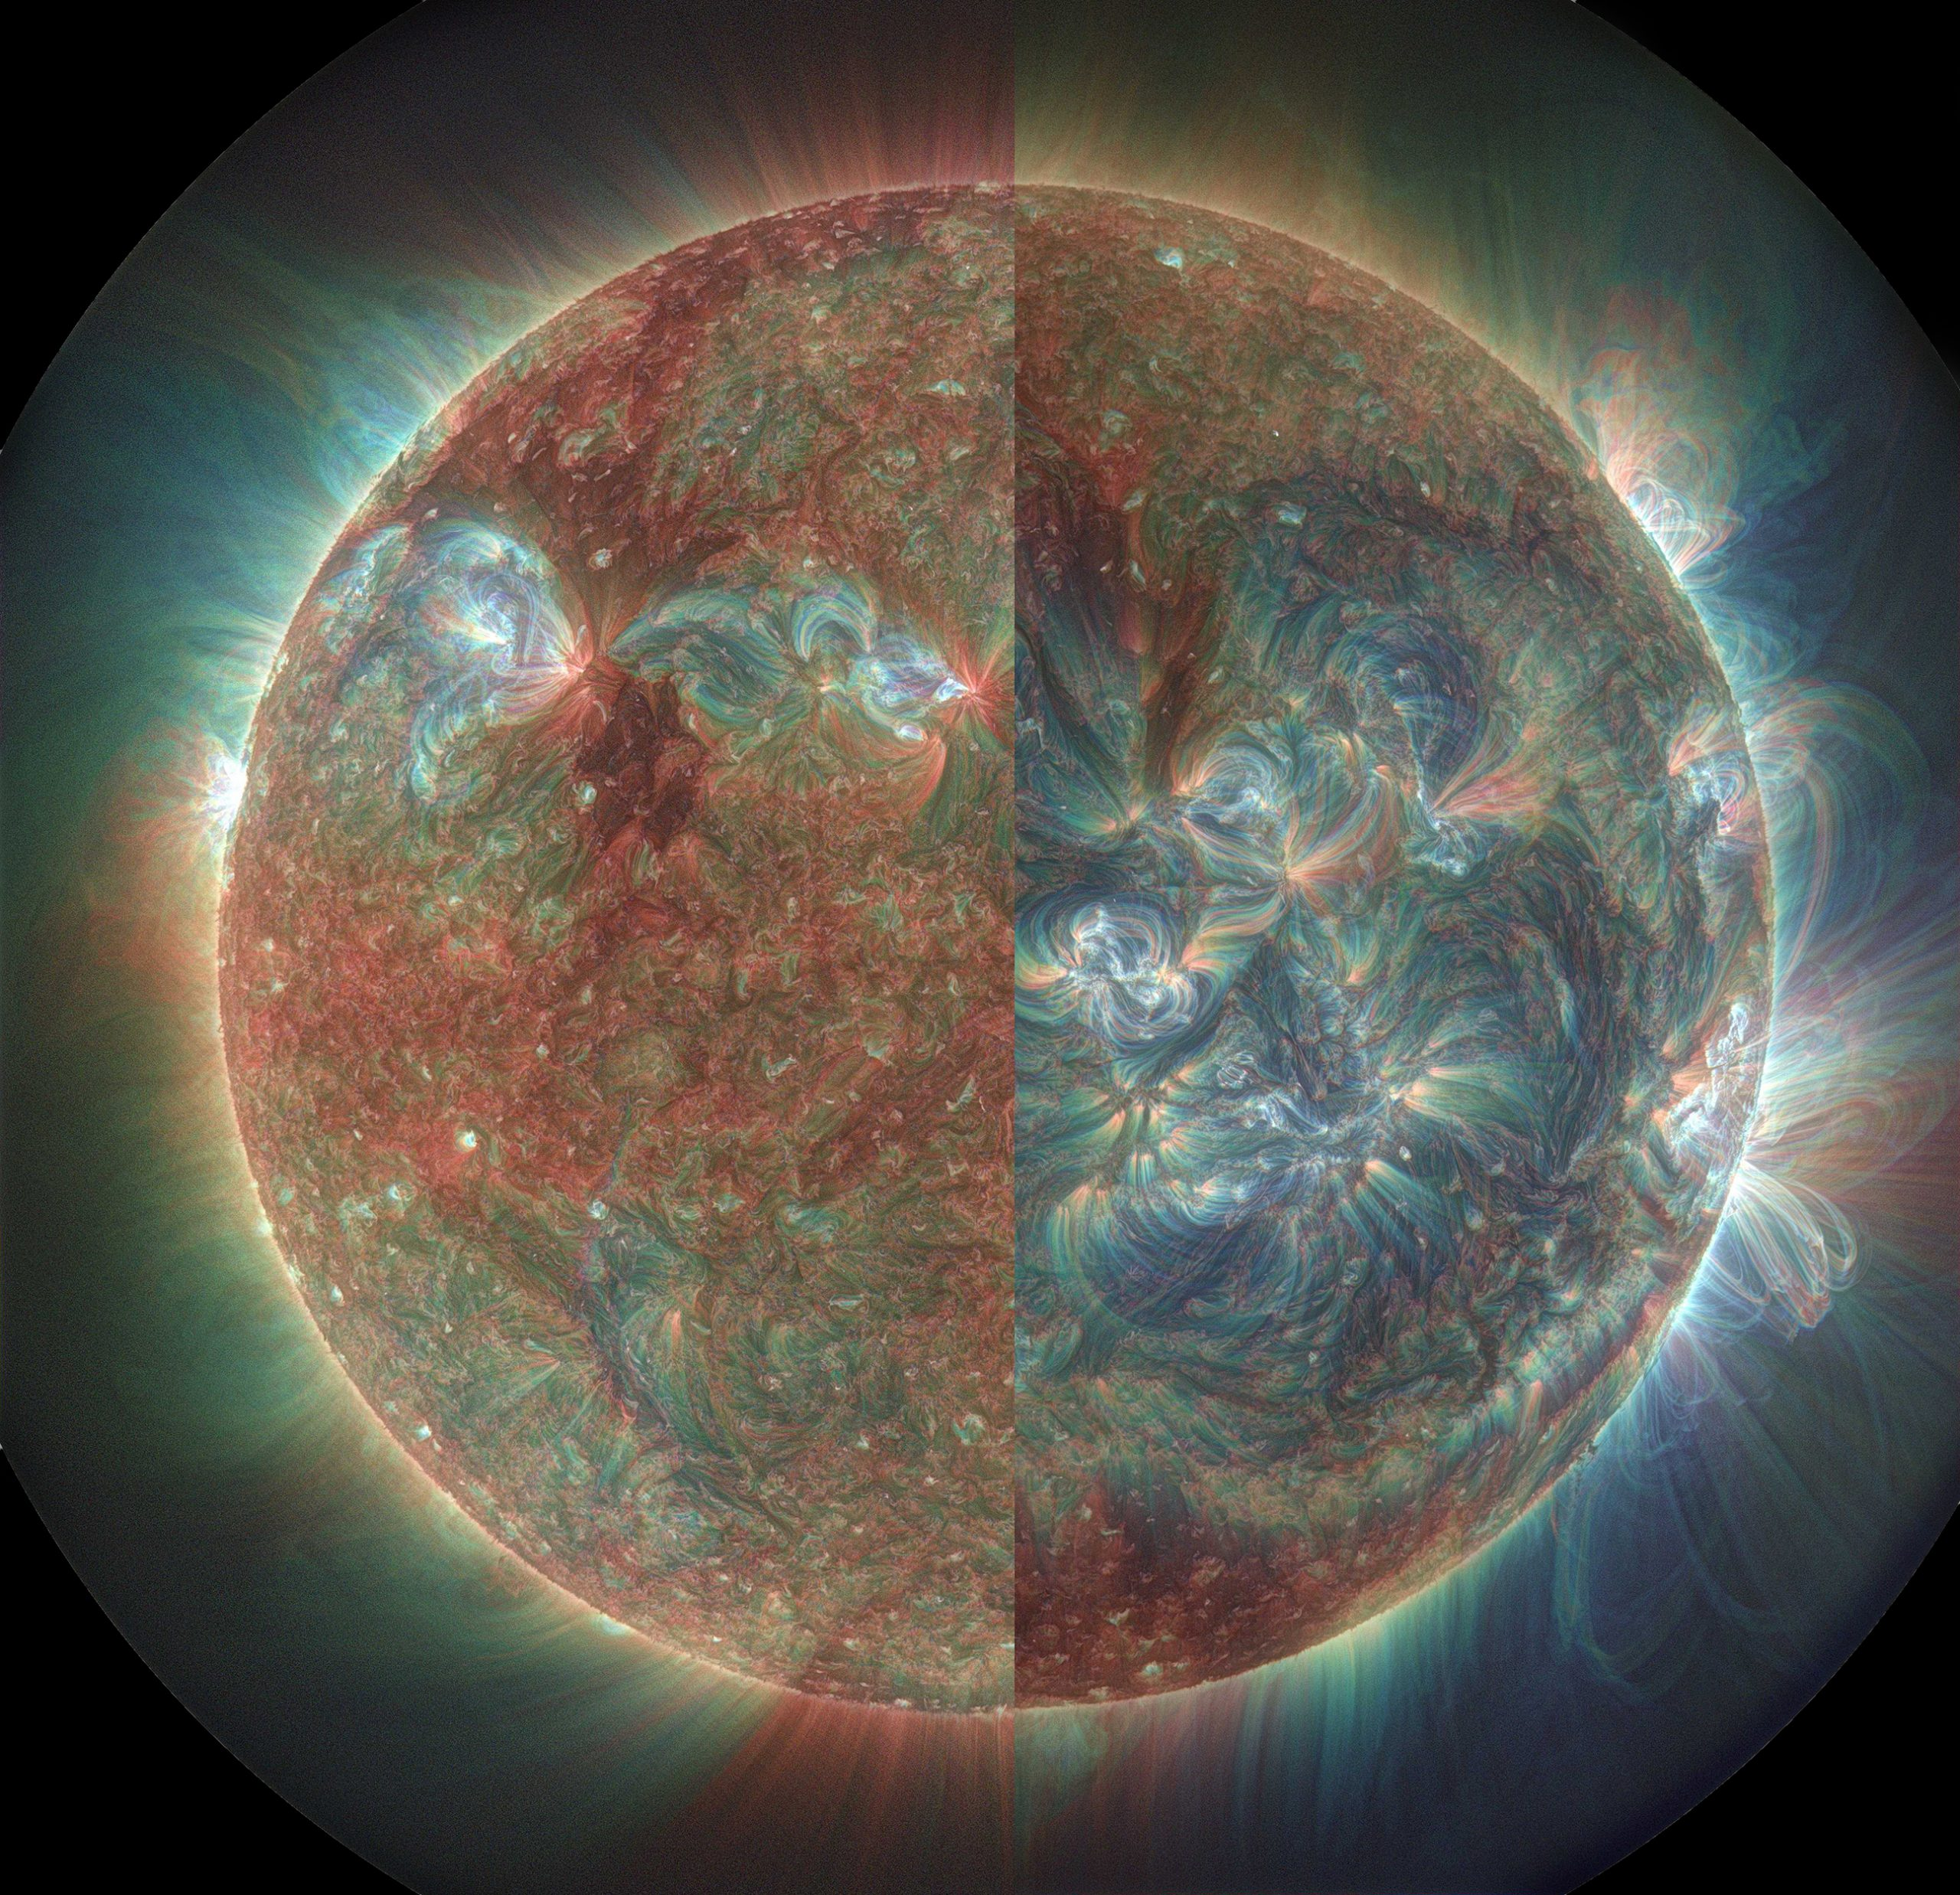 Solar cycle changes in the solar corona as viewed by Atmospheric Imaging Assembly (AIA) on the Solar Dynamic Observatory in extreme ultraviolet (EUV) toward the end of the latest solar minimum activity period in May 2010 (left half) and during the current solar maximum period in December 2014 (right half).